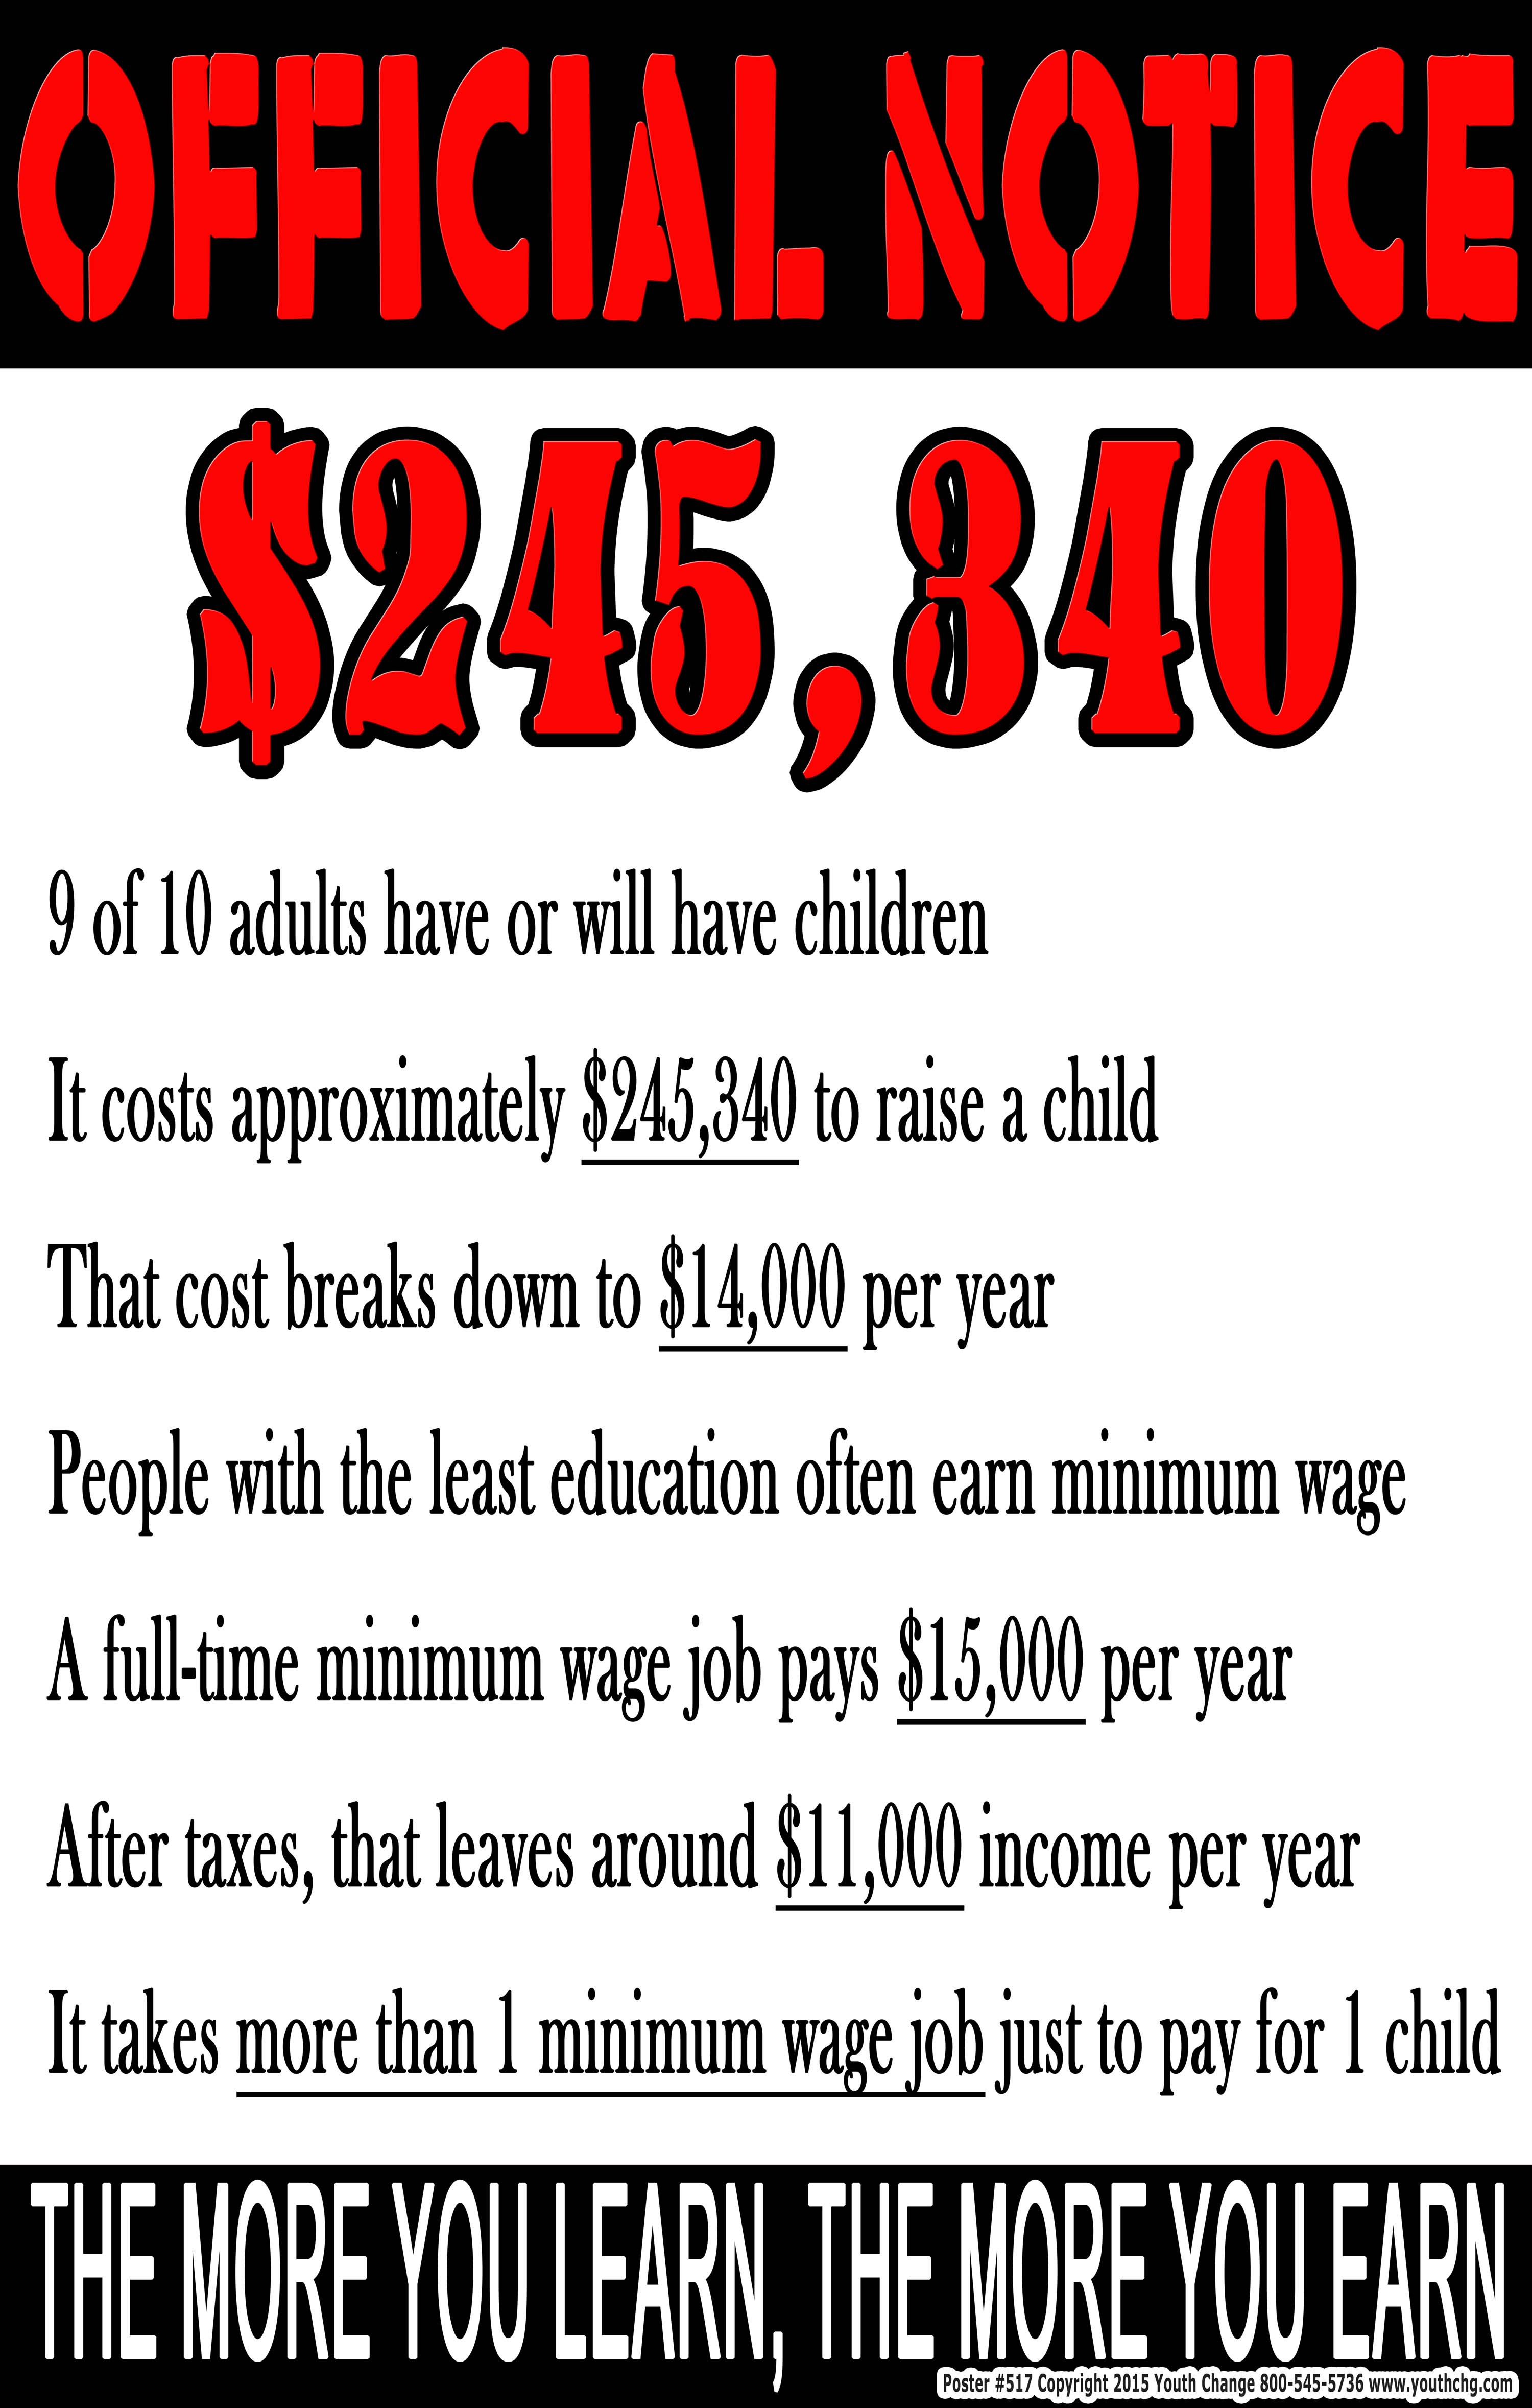 Motivational Classroom Poster Cost To Raise Child On